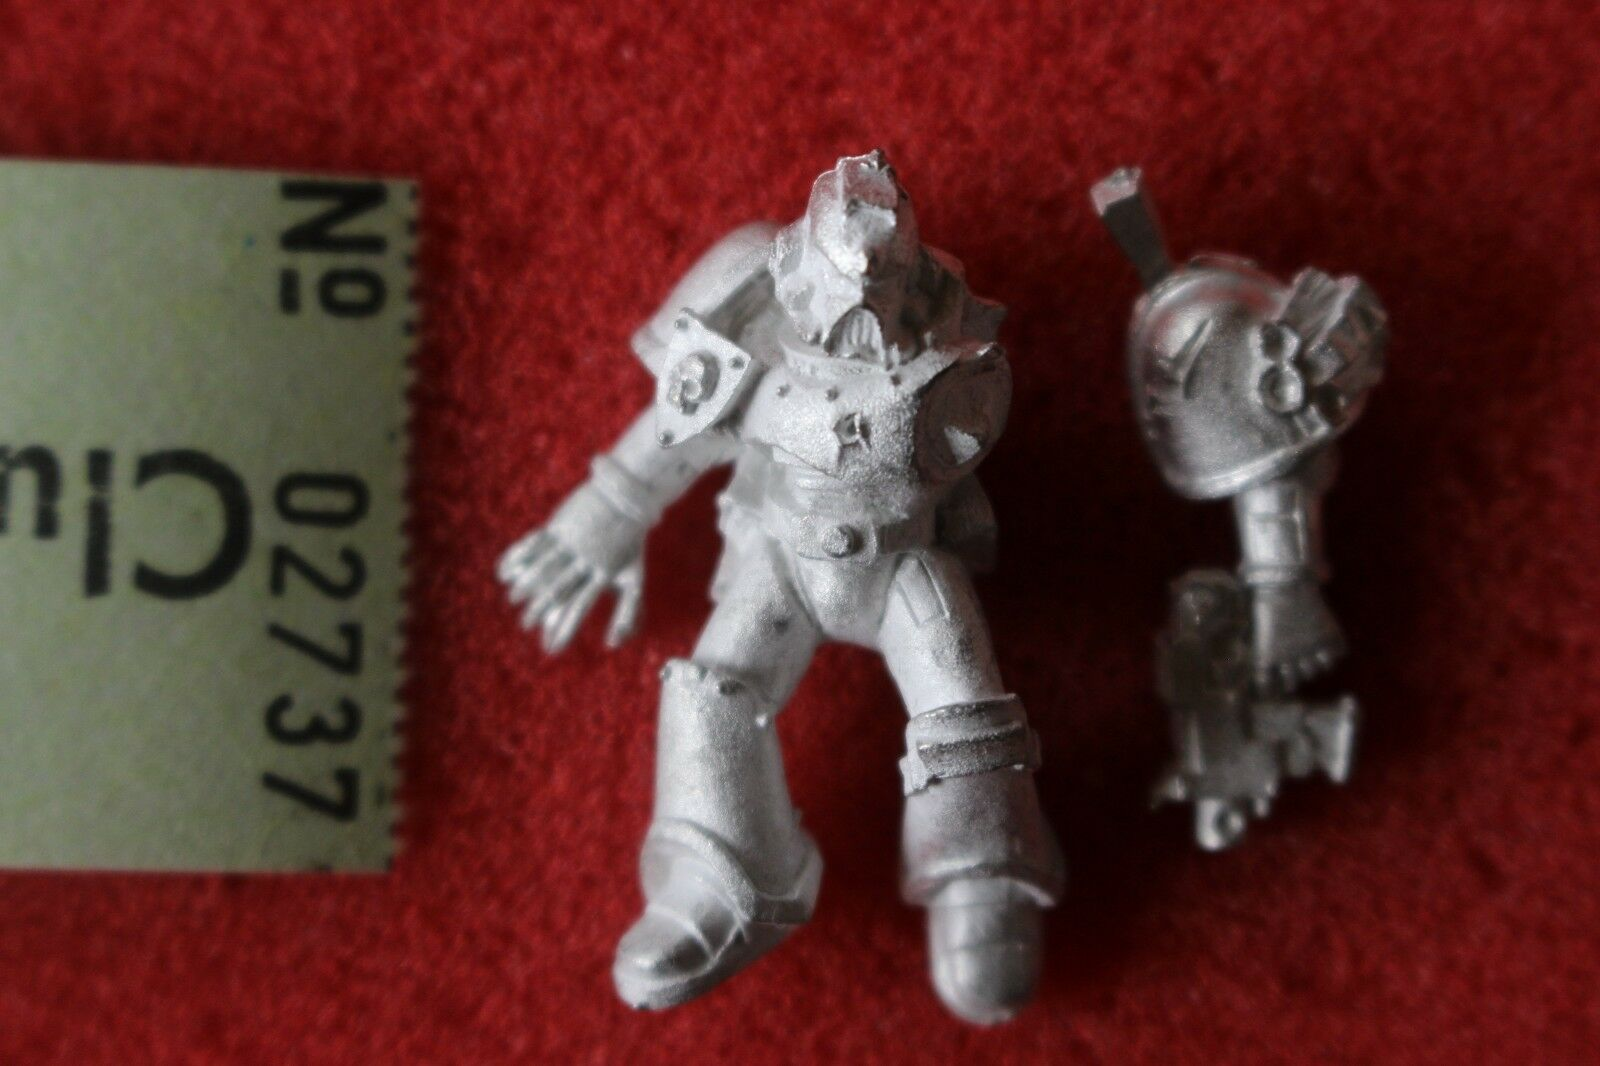 Games Workshop Warhammer 40k Space Marines Casualty Casualties New Metal Figure